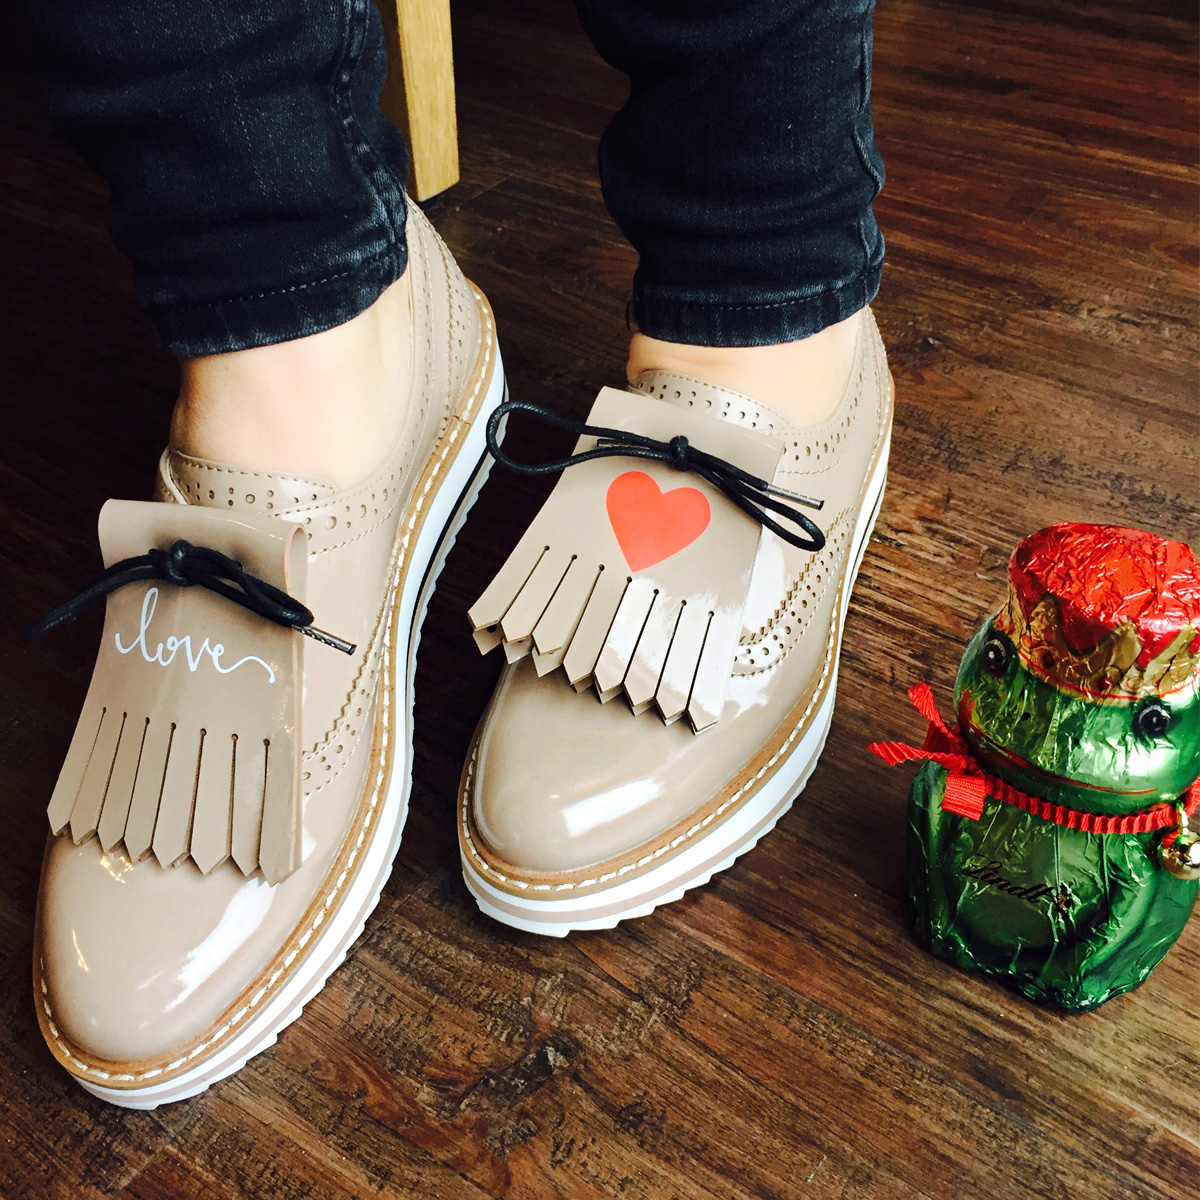 julia-ripped-jeans-loafer-bluse-frosch-valentinstag-1